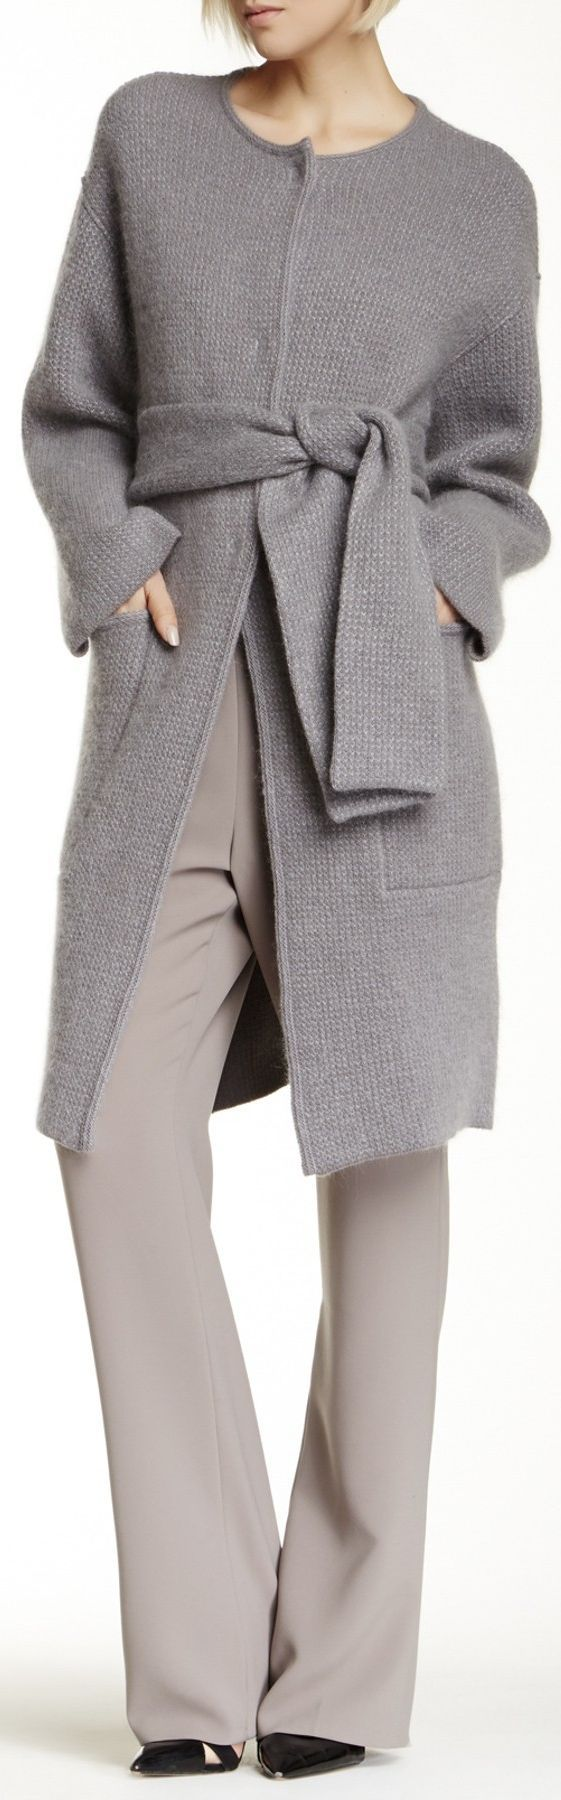 Giorgio Armani Wool Blend Coat women fashion outfit clothing style apparel…